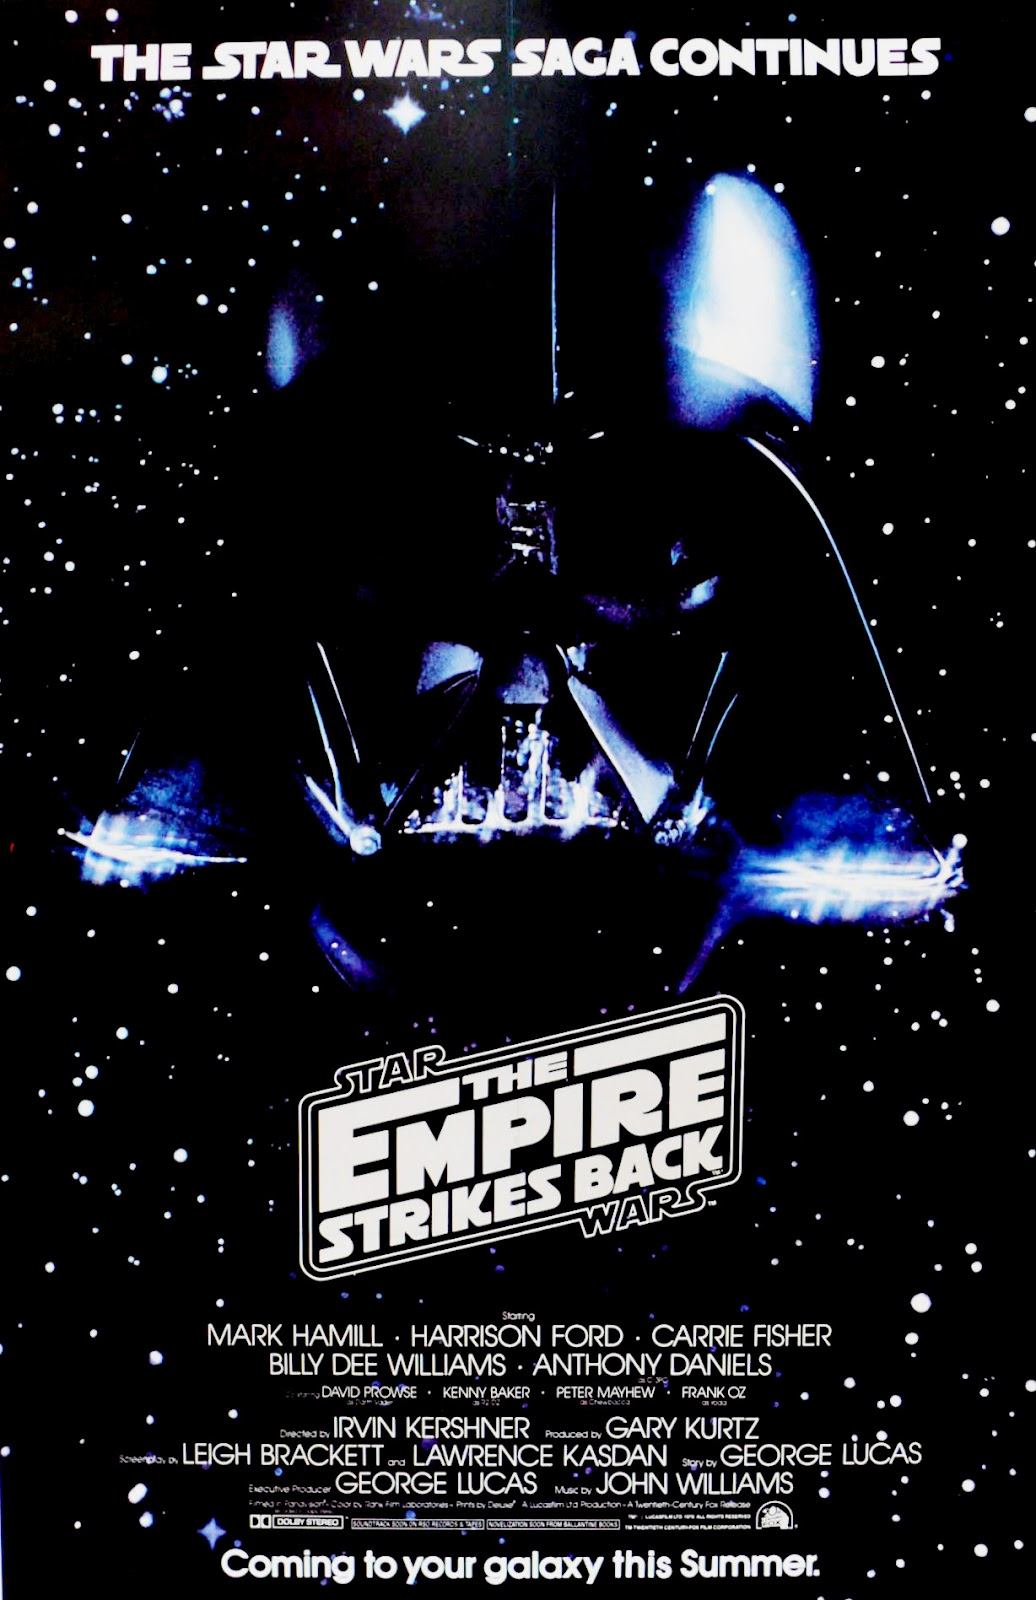 star_wars_episode_5_the_empire_strikes_back_poster_1980_02.jpg